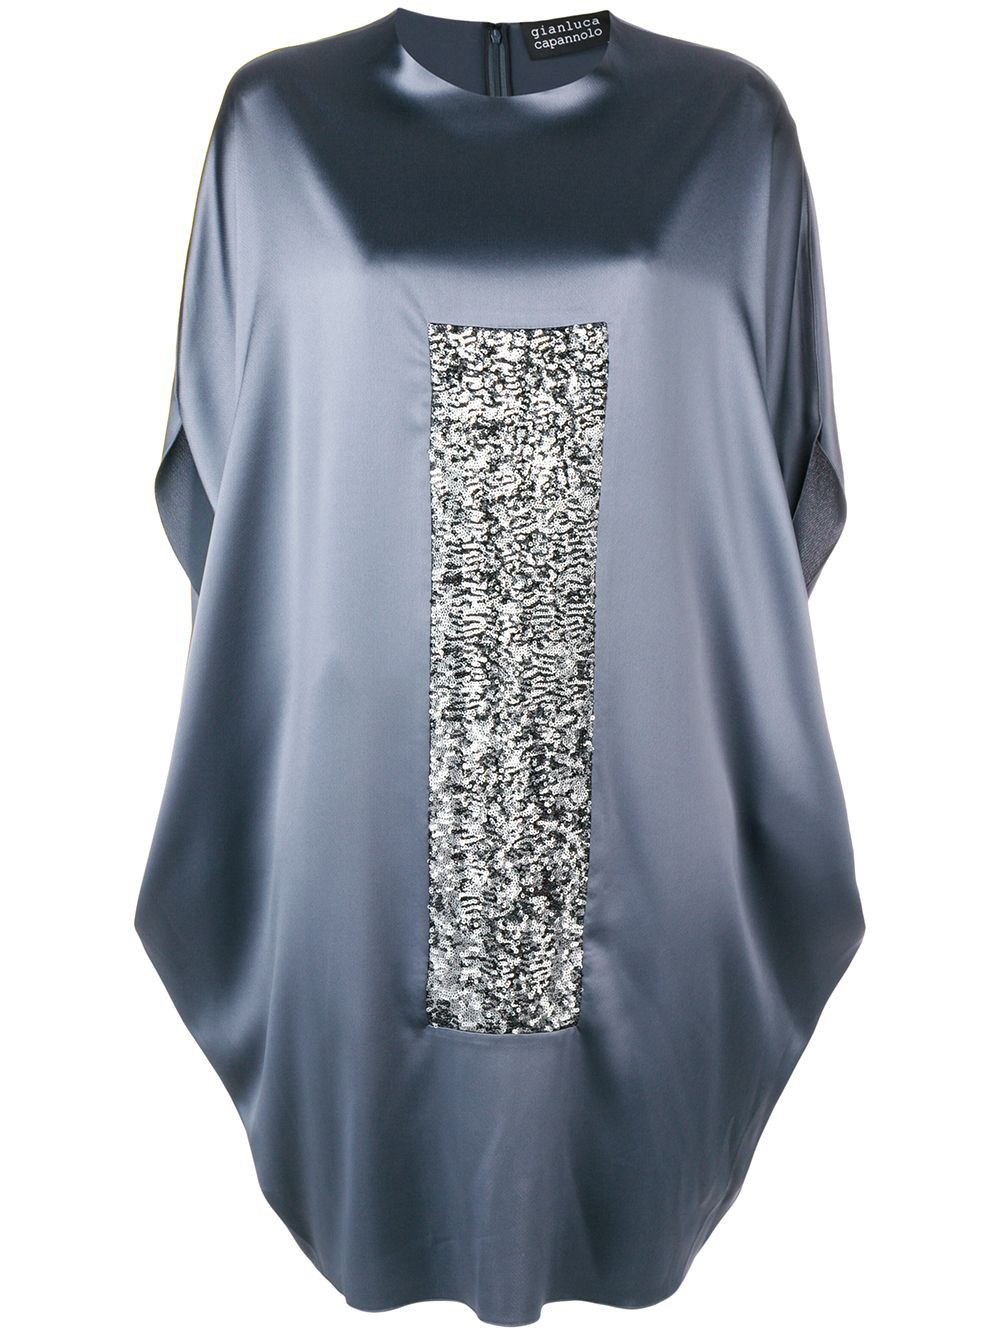 Gianluca Capannolo Oversized Sequin Panel T-shirt Dress - Grey In Gray